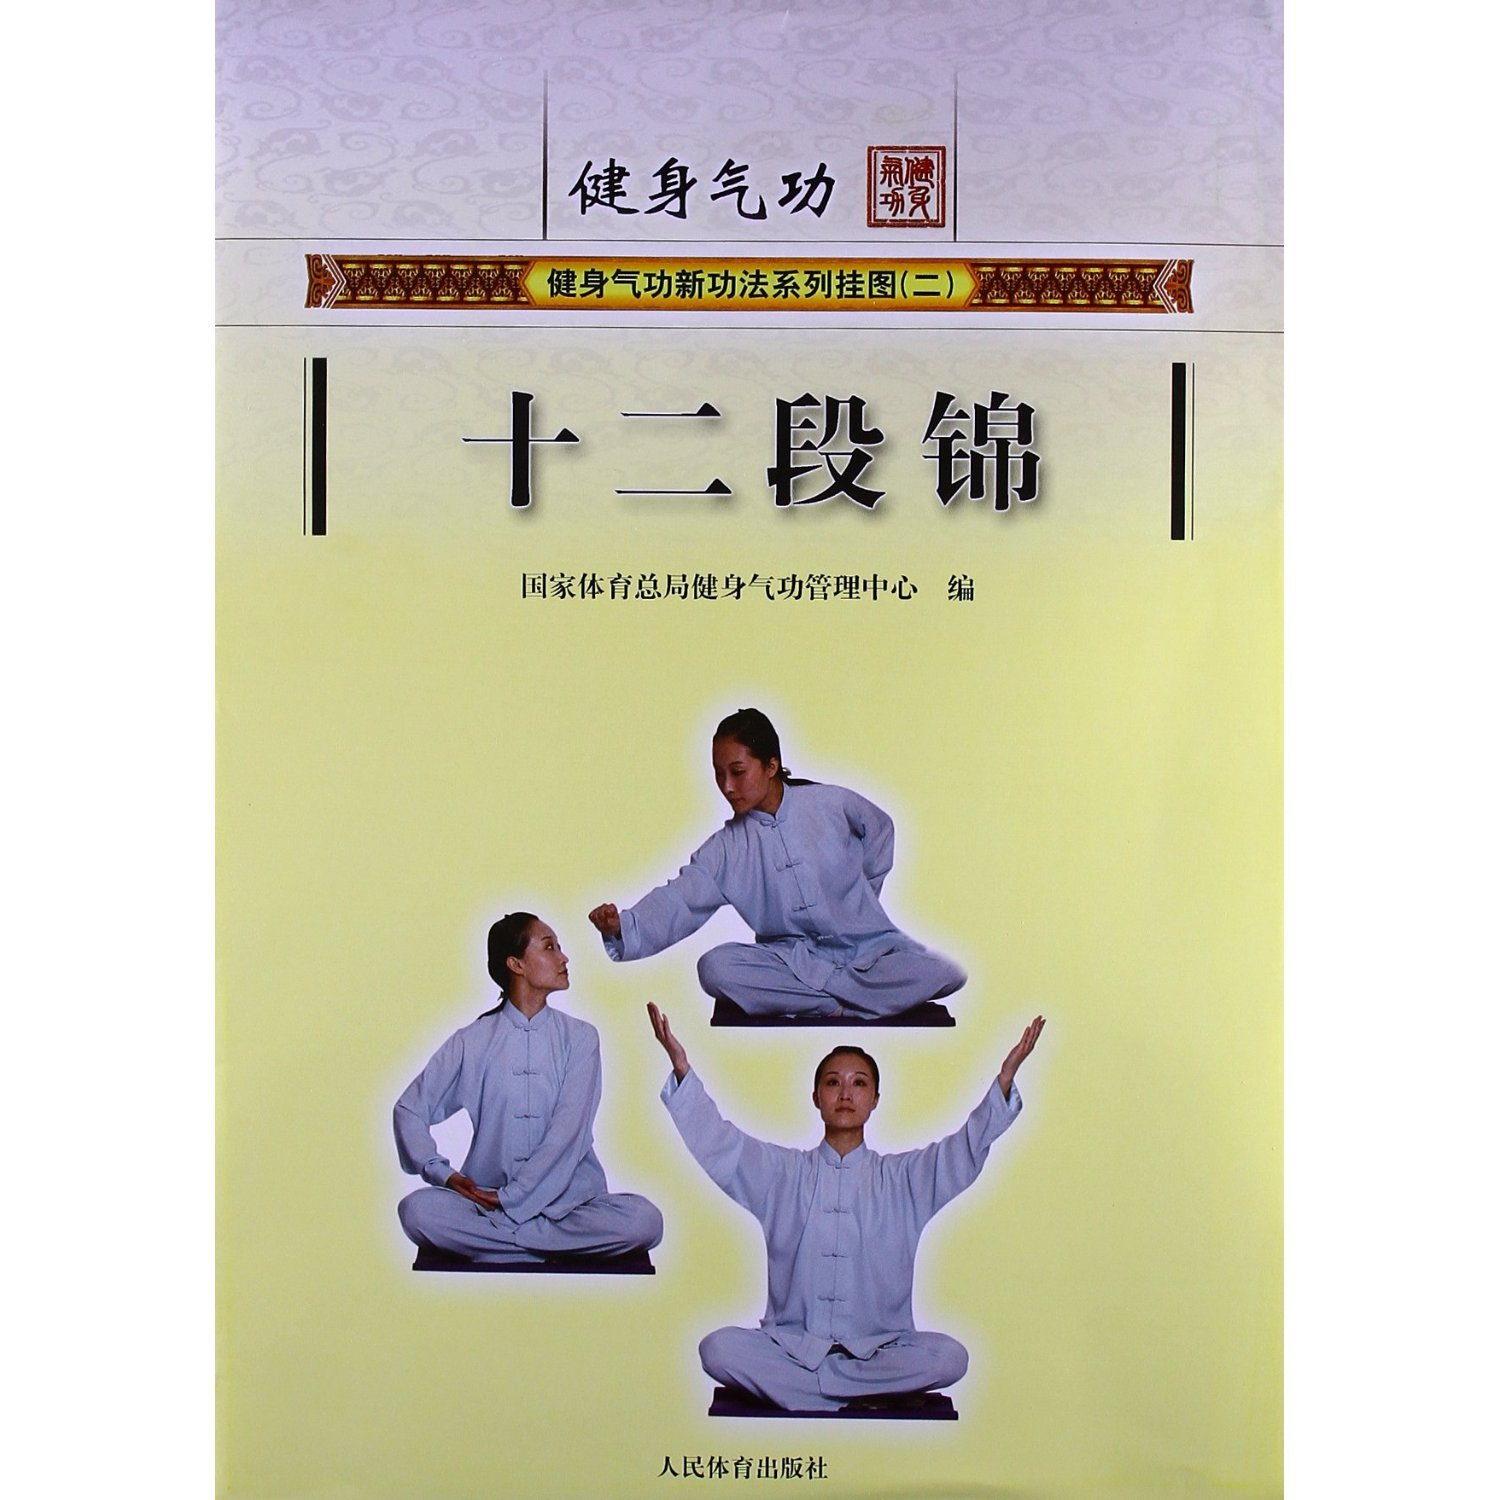 Download 12-Routine Exercises Shi Er Duan Jin/Series Wall Charts of New Exercises of Health Qigong (Chinese Edition) pdf